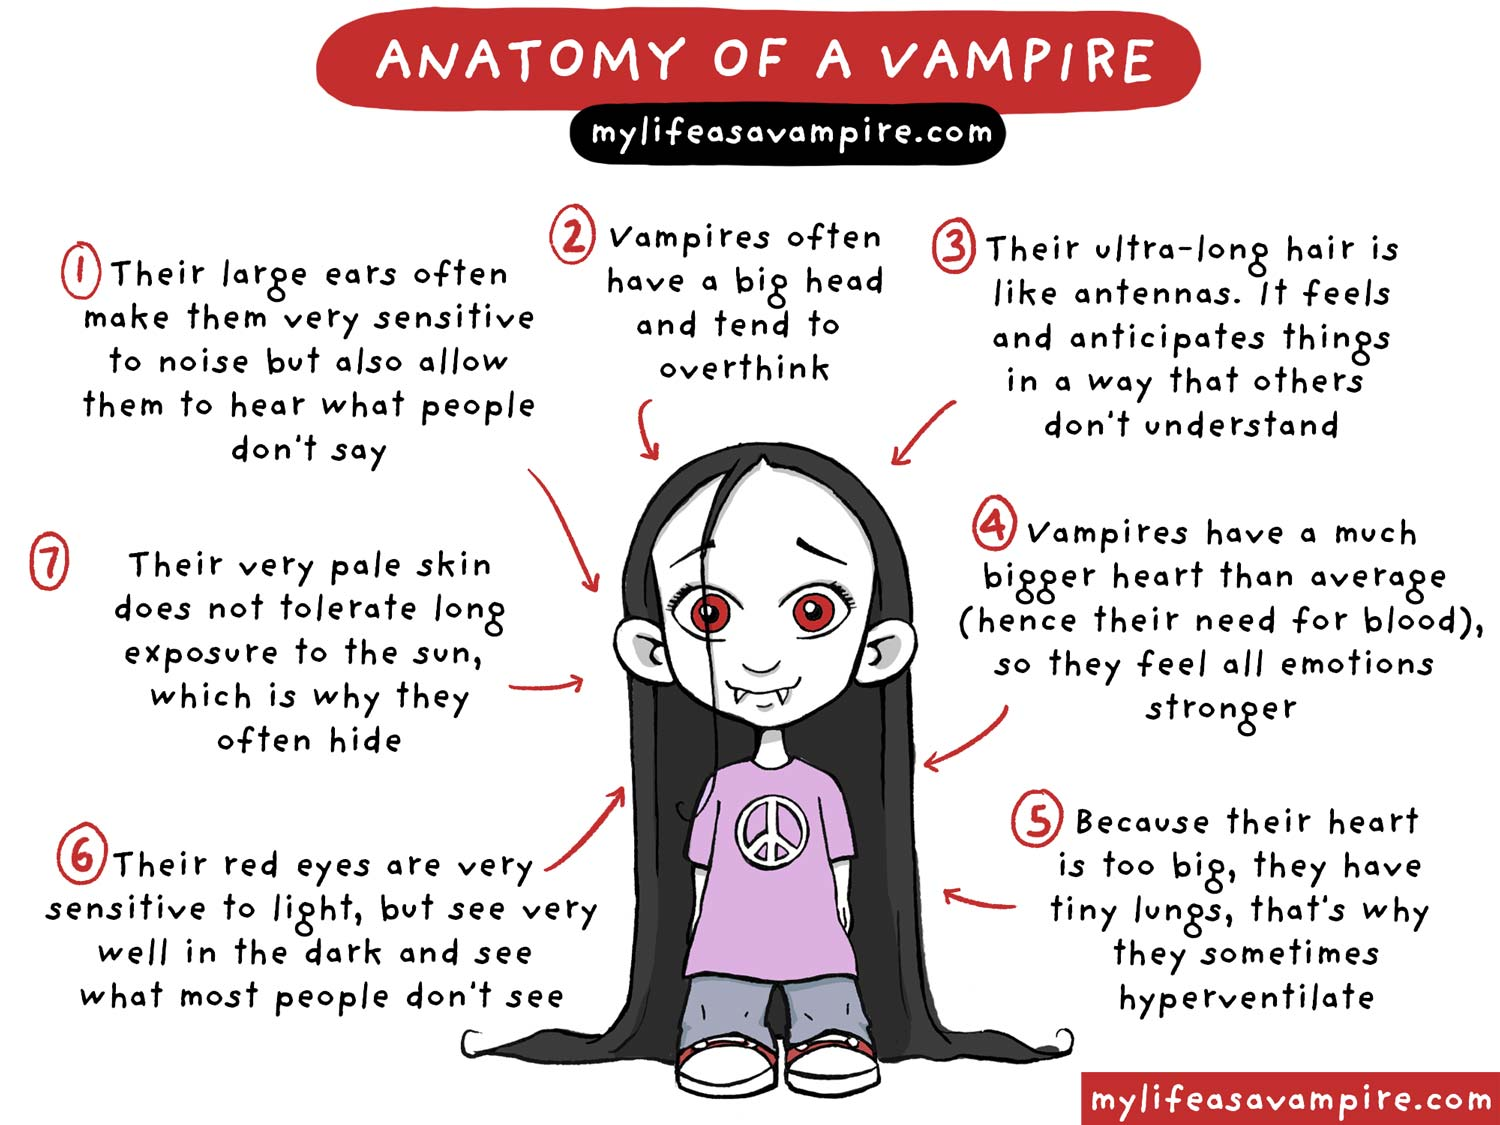 Their hypersensitivity makes vampires like Zabeth highly sensitive to sounds, light, and also to emotions.